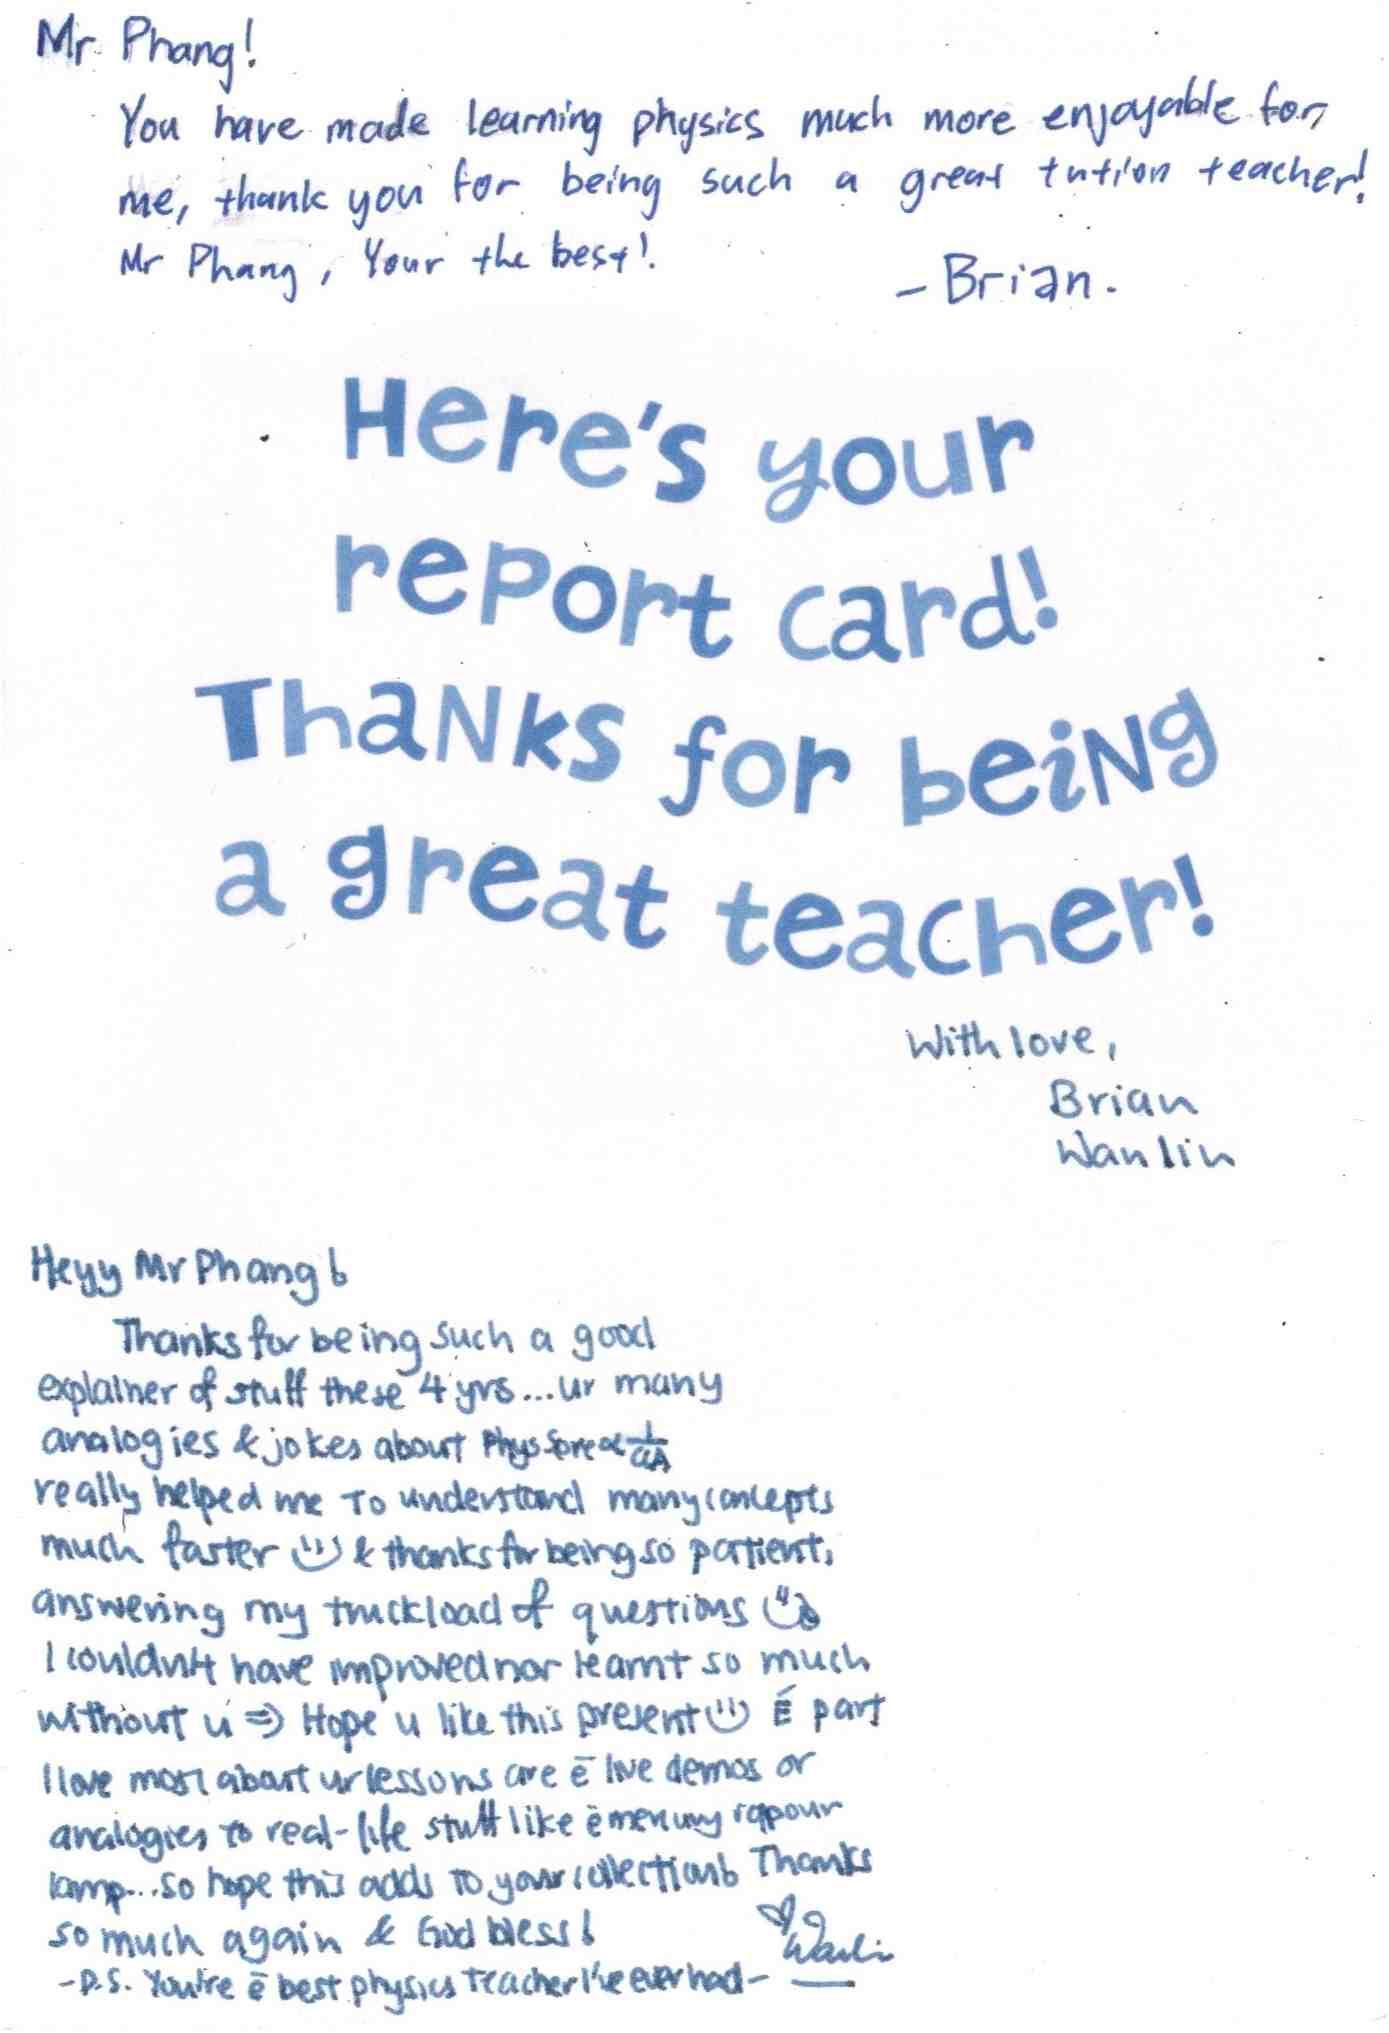 Teacher S Day Cards The 2013 Report Card Thanks For Being A